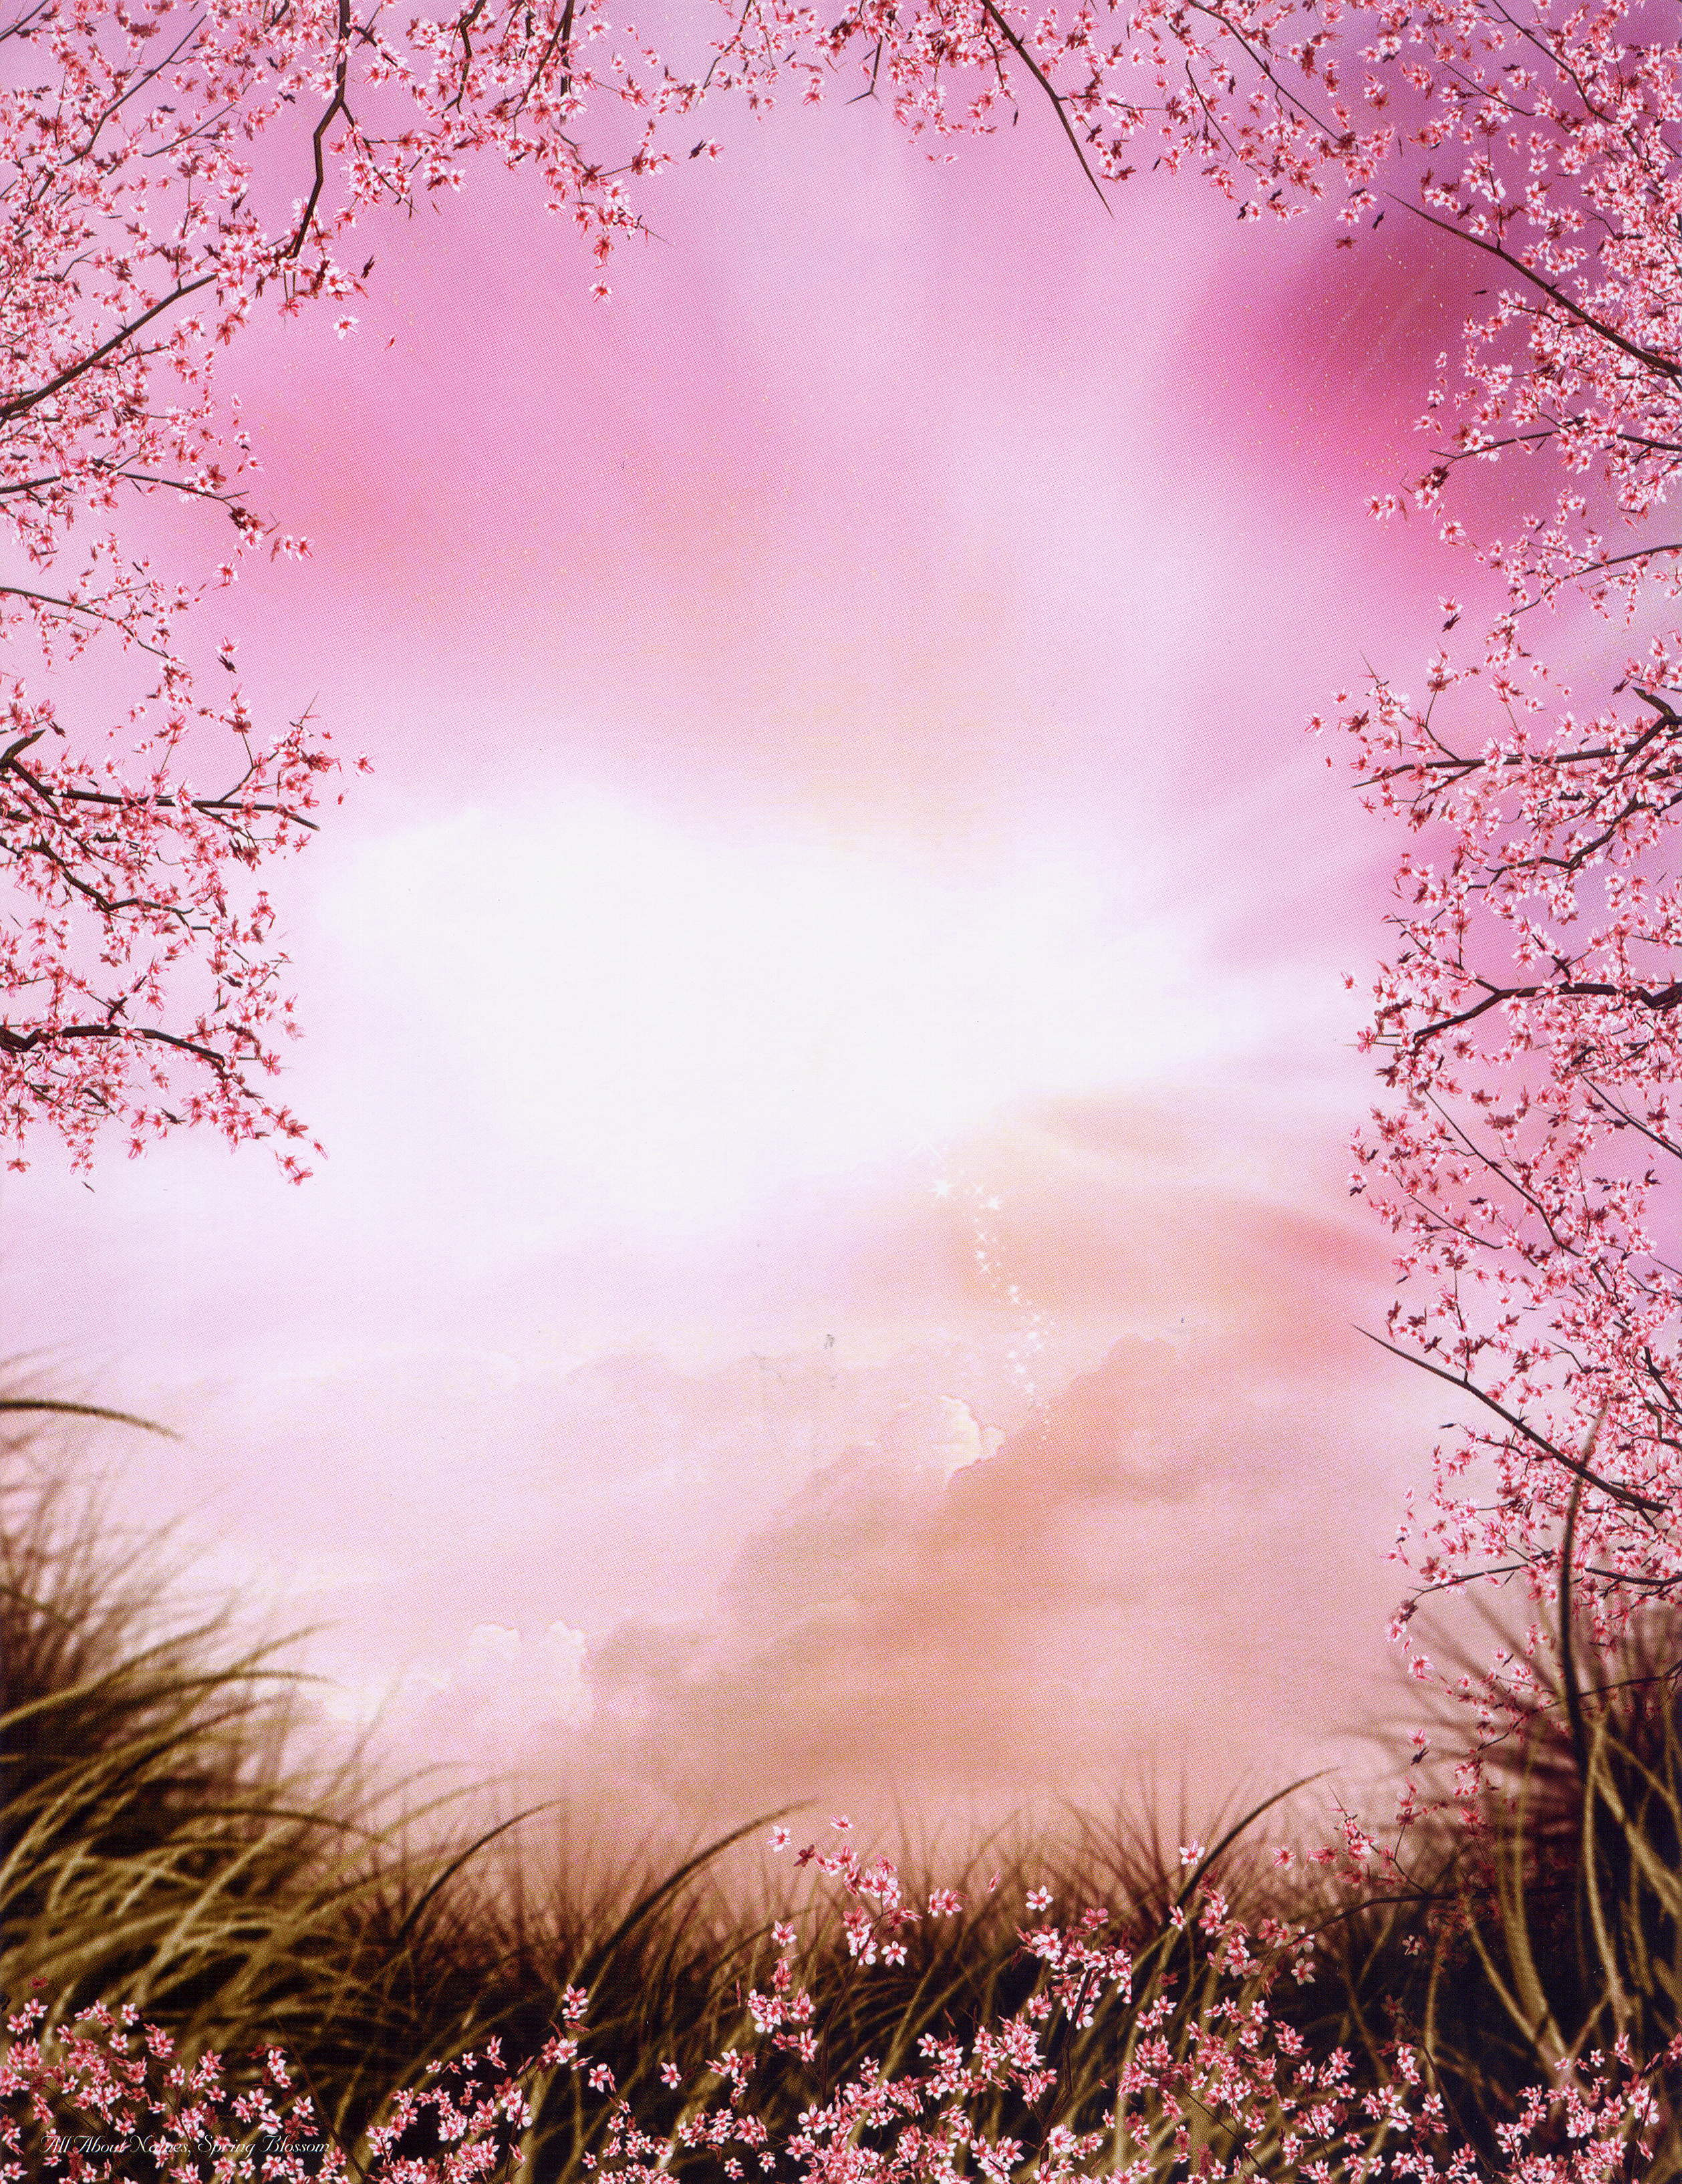 Best 43 Poet Backgrounds on HipWallpaper Poet Wallpaper Poet 2517x3268